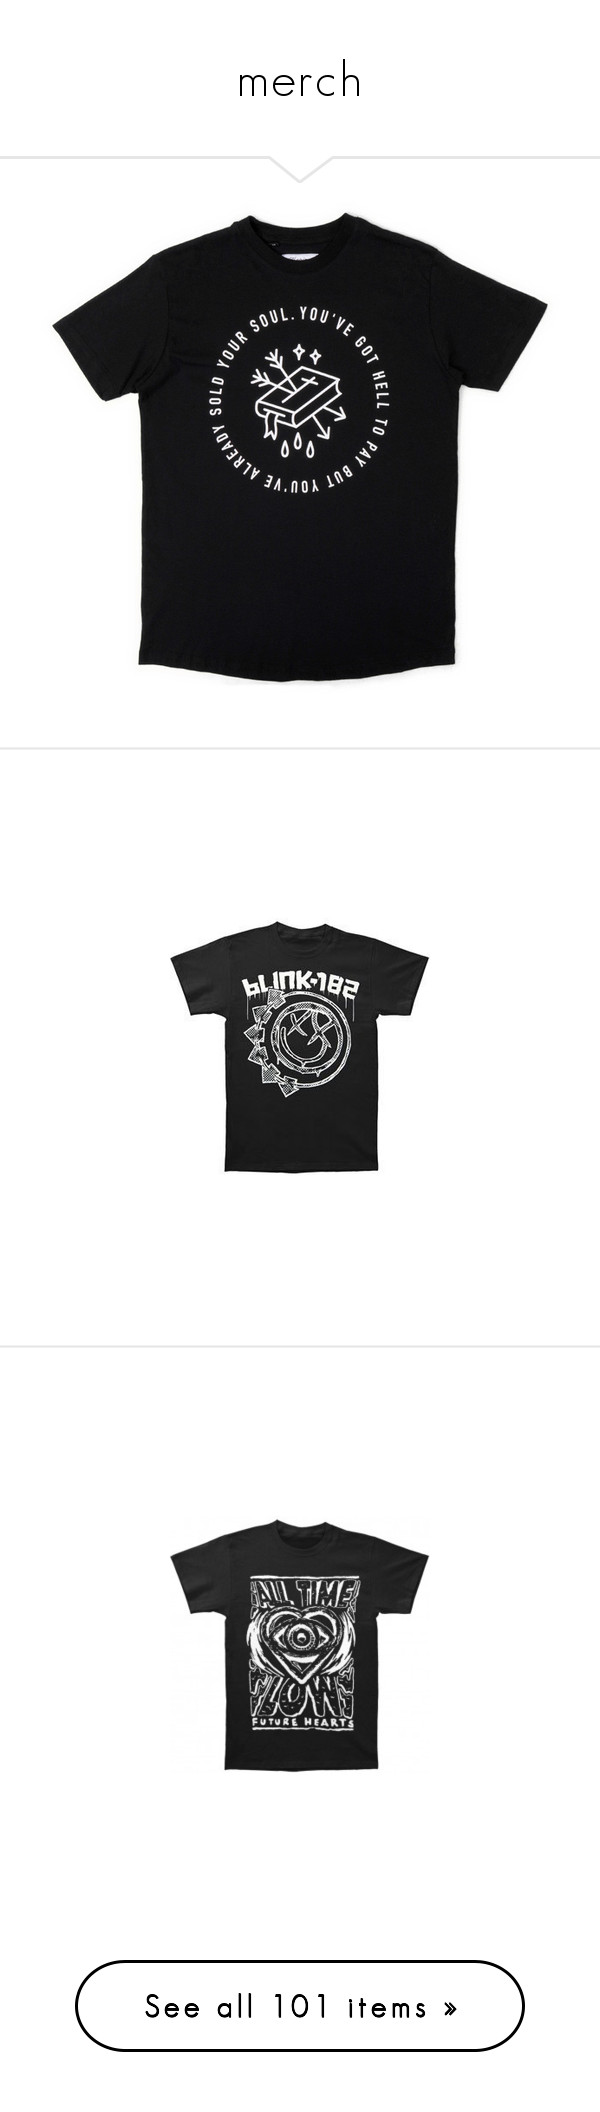 """""""merch"""" by liniertespapier ❤ liked on Polyvore featuring batman, bands, DC, merch, tops, t-shirts, cotton tee, cotton t shirts, shirts and band shirts"""